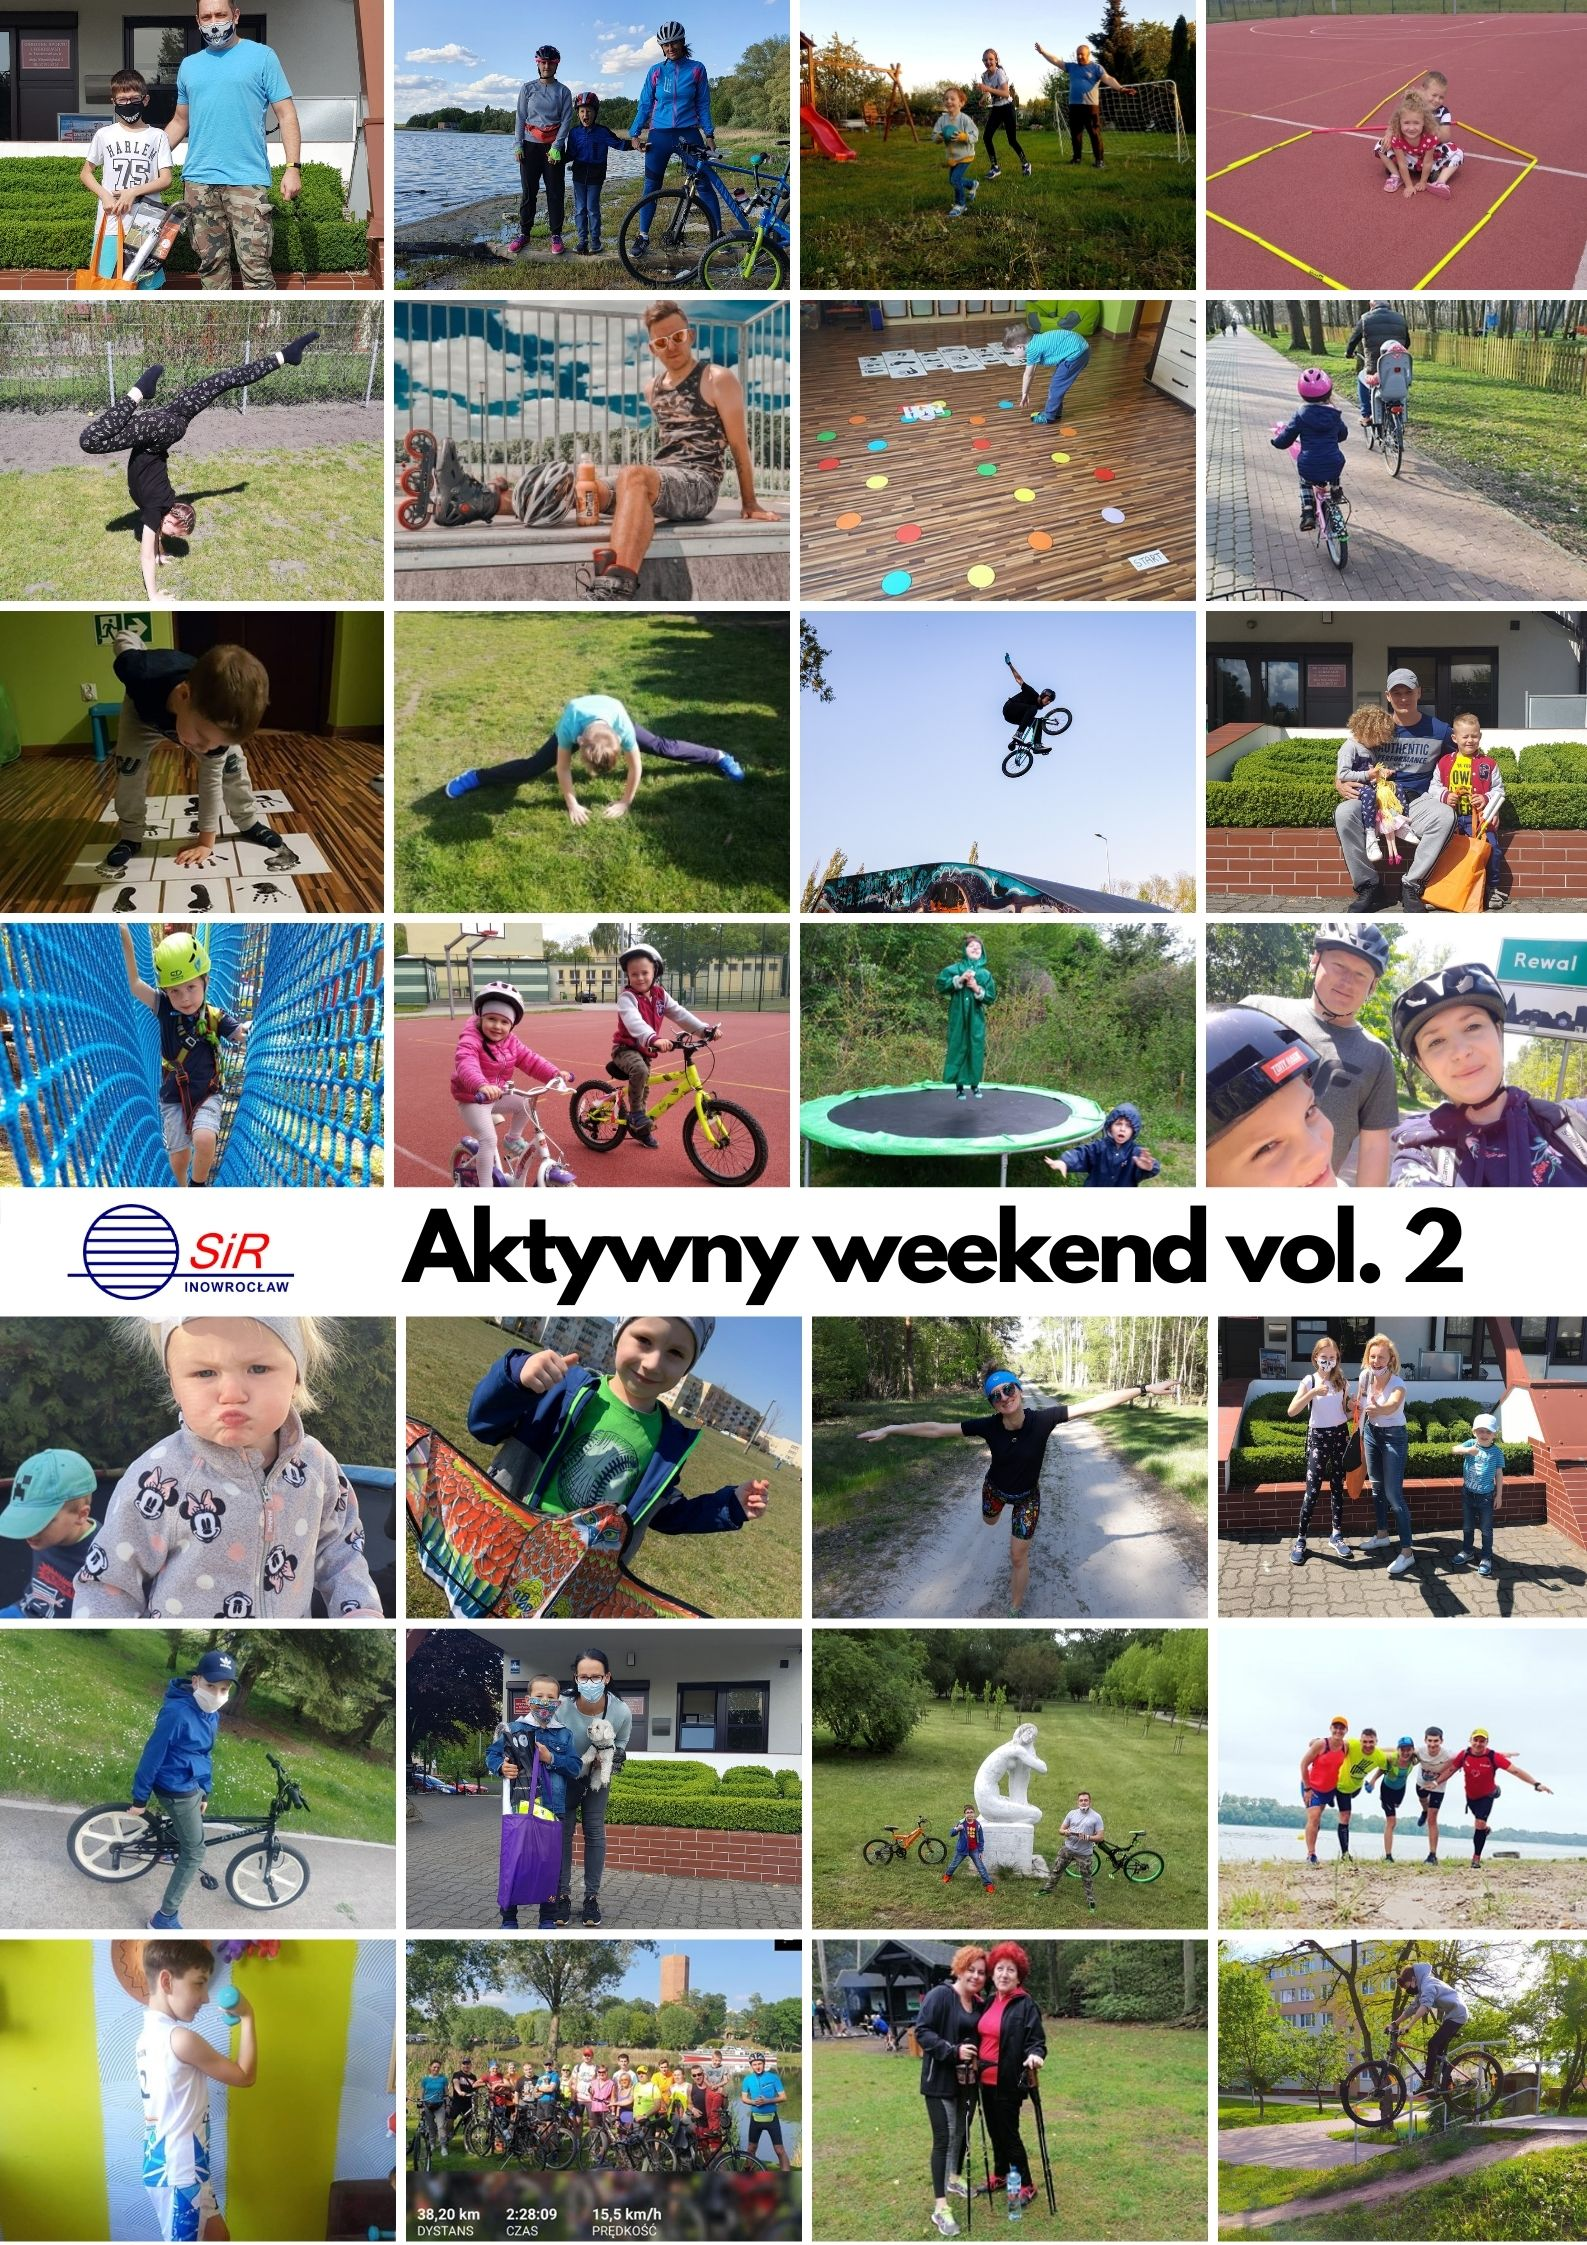 plakat aktywny weekend vol.2